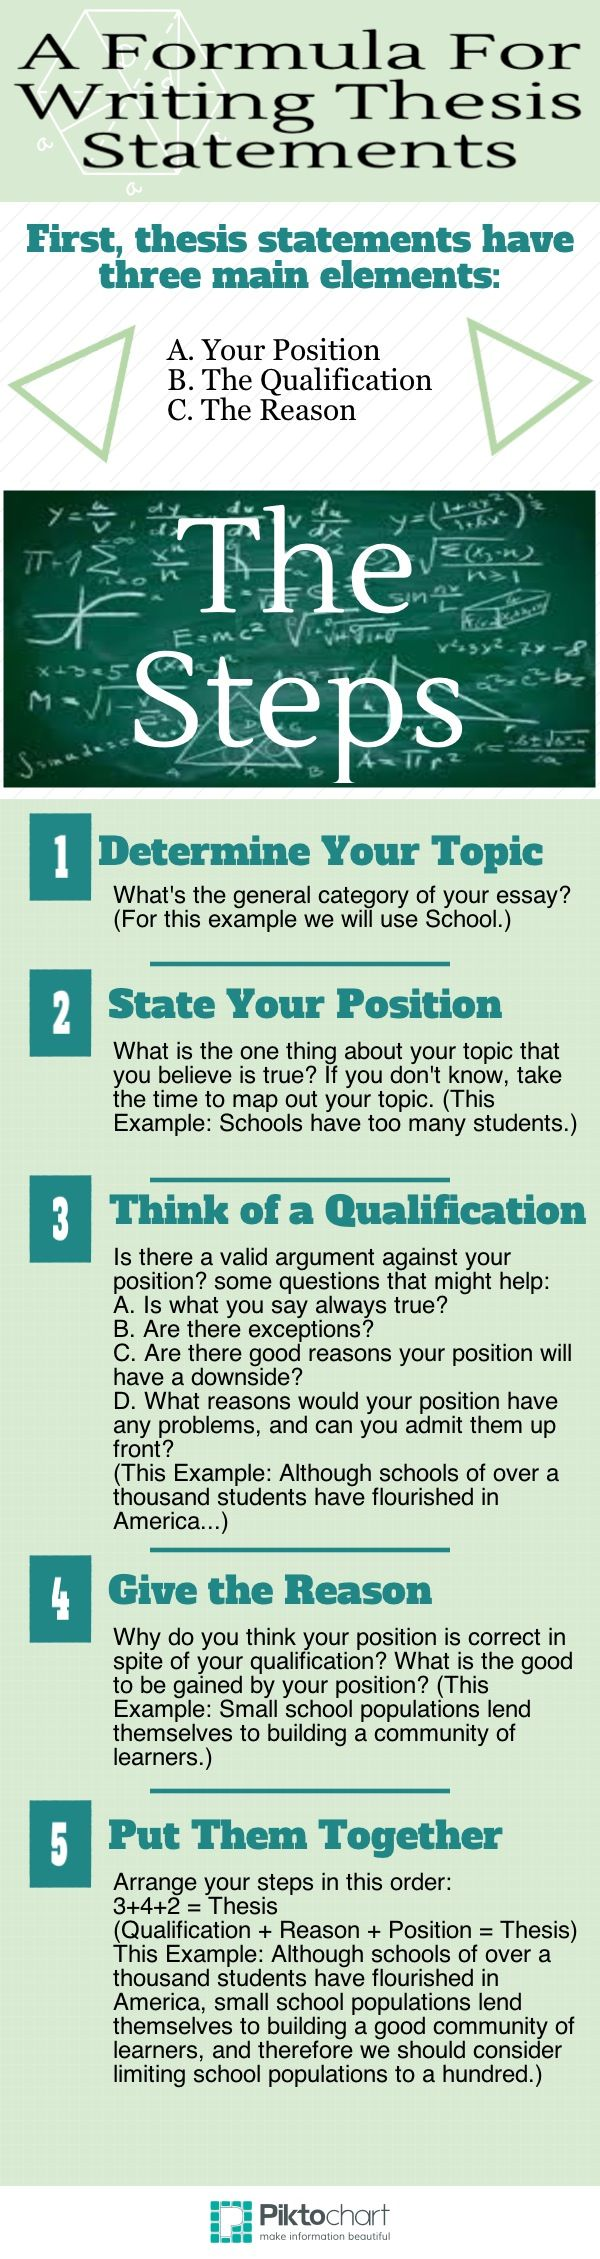 Thesis Statements  Piktochart Infographic  Education  Learning Infographics  Pinterest